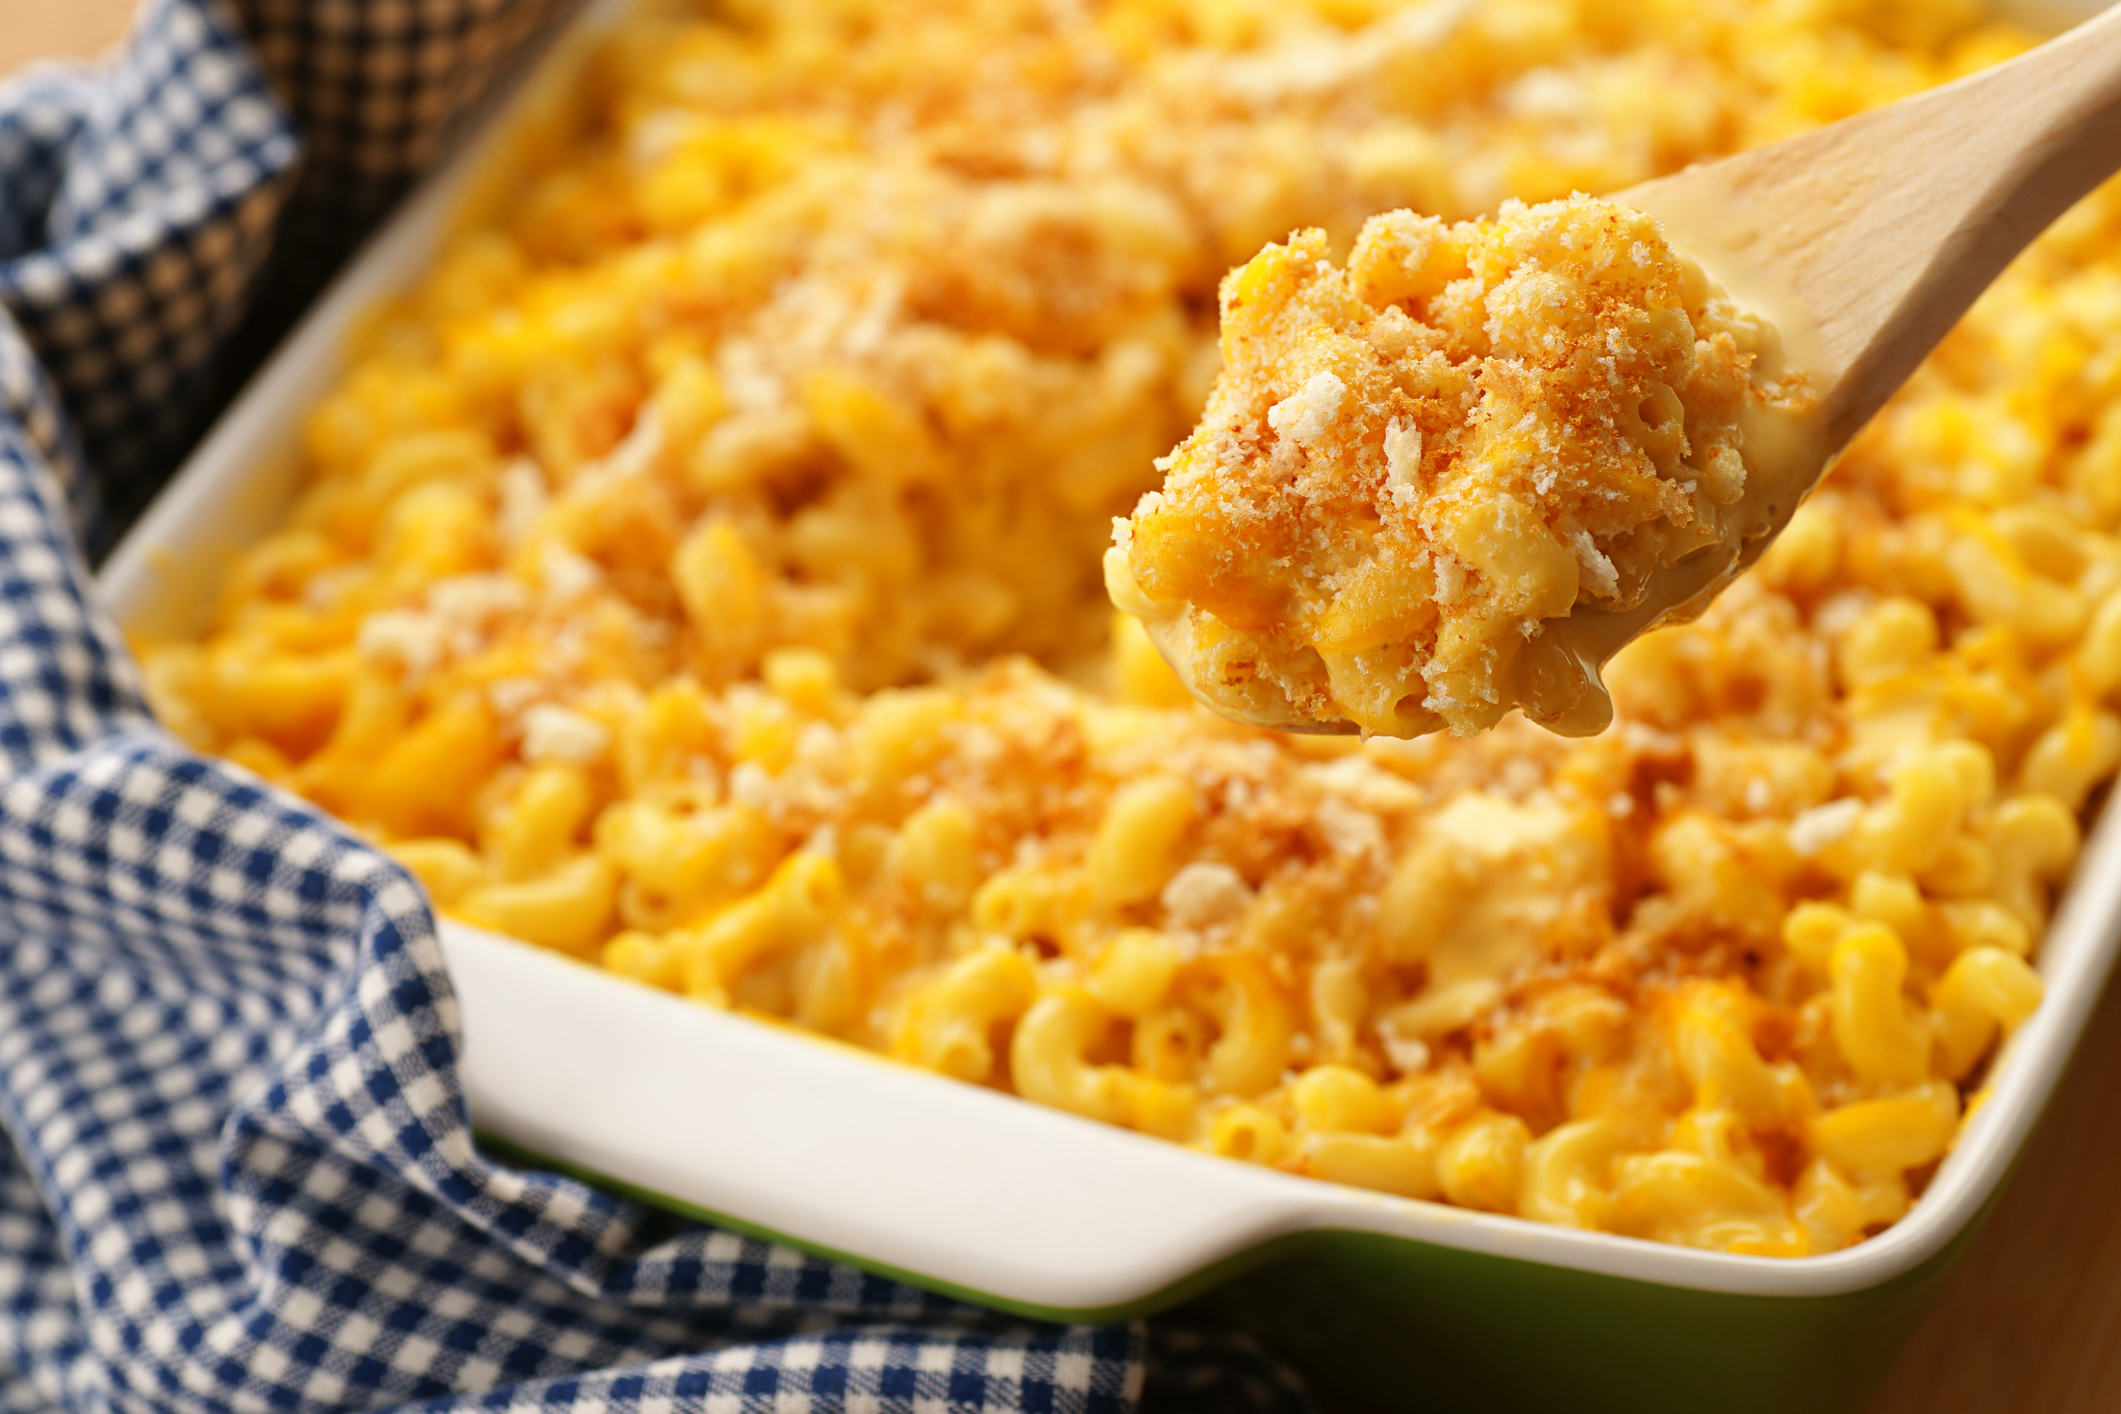 Meal Makeover: Mac 'n' Cheese